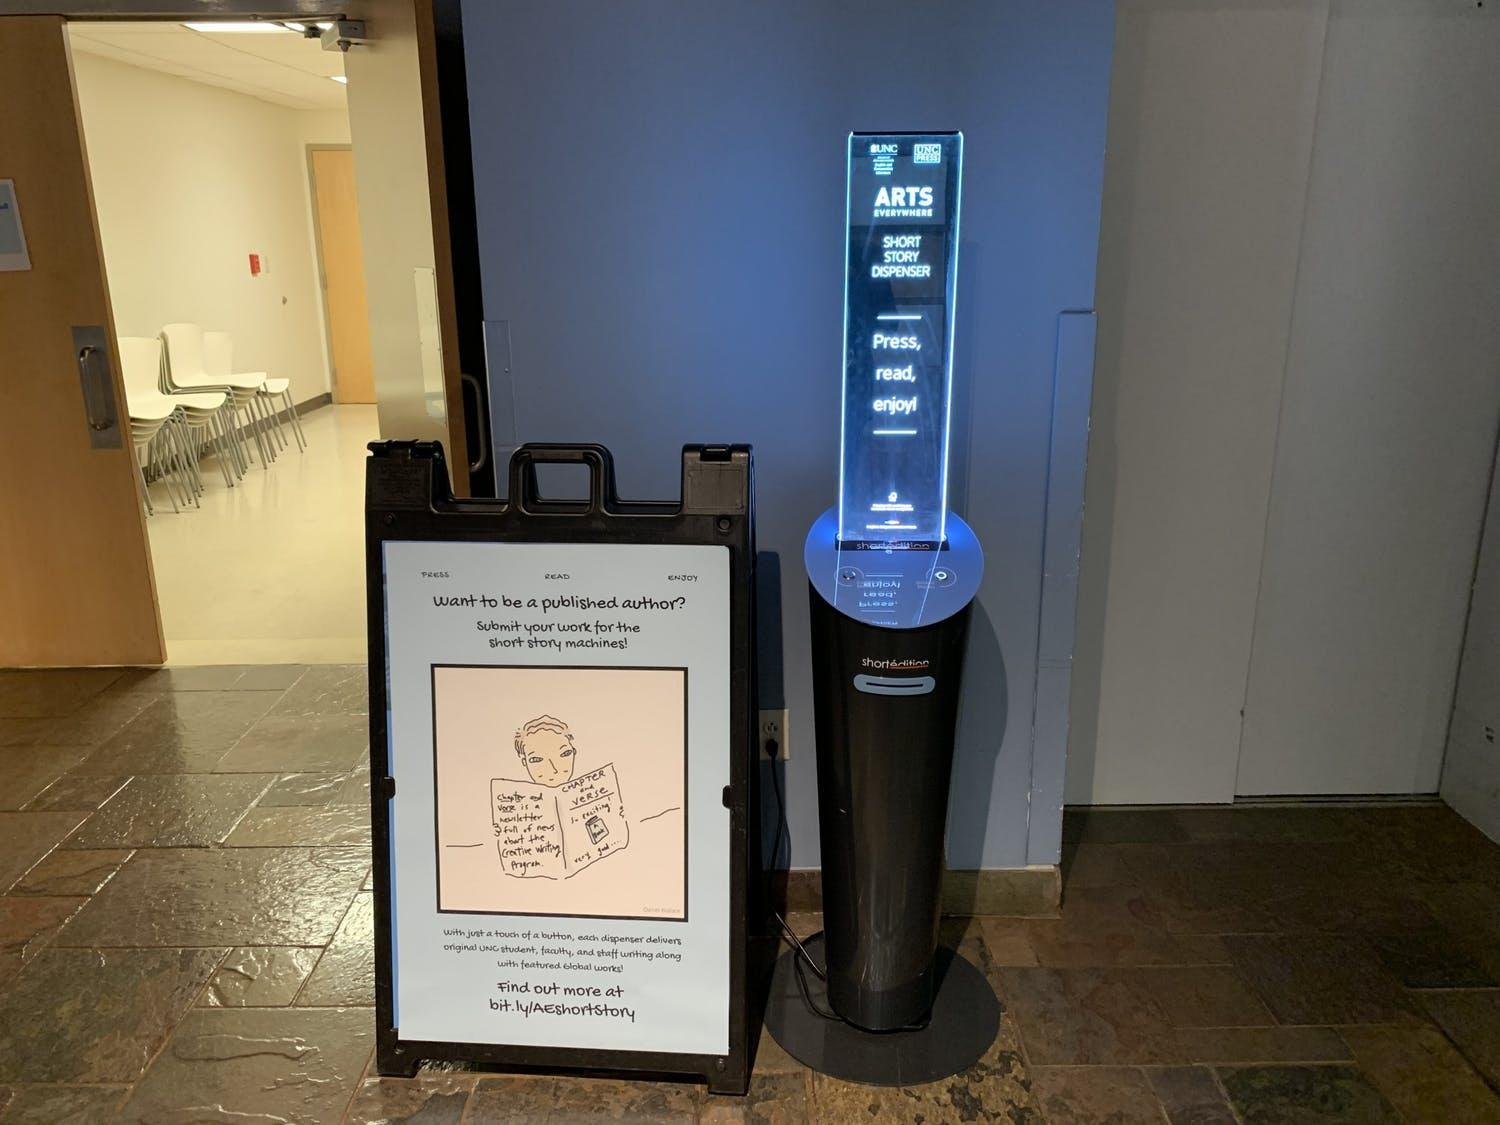 There are eight short stories dispensers across campus like this one in the Student Union. The short story dispensers feature the work of UNC students and local authors.